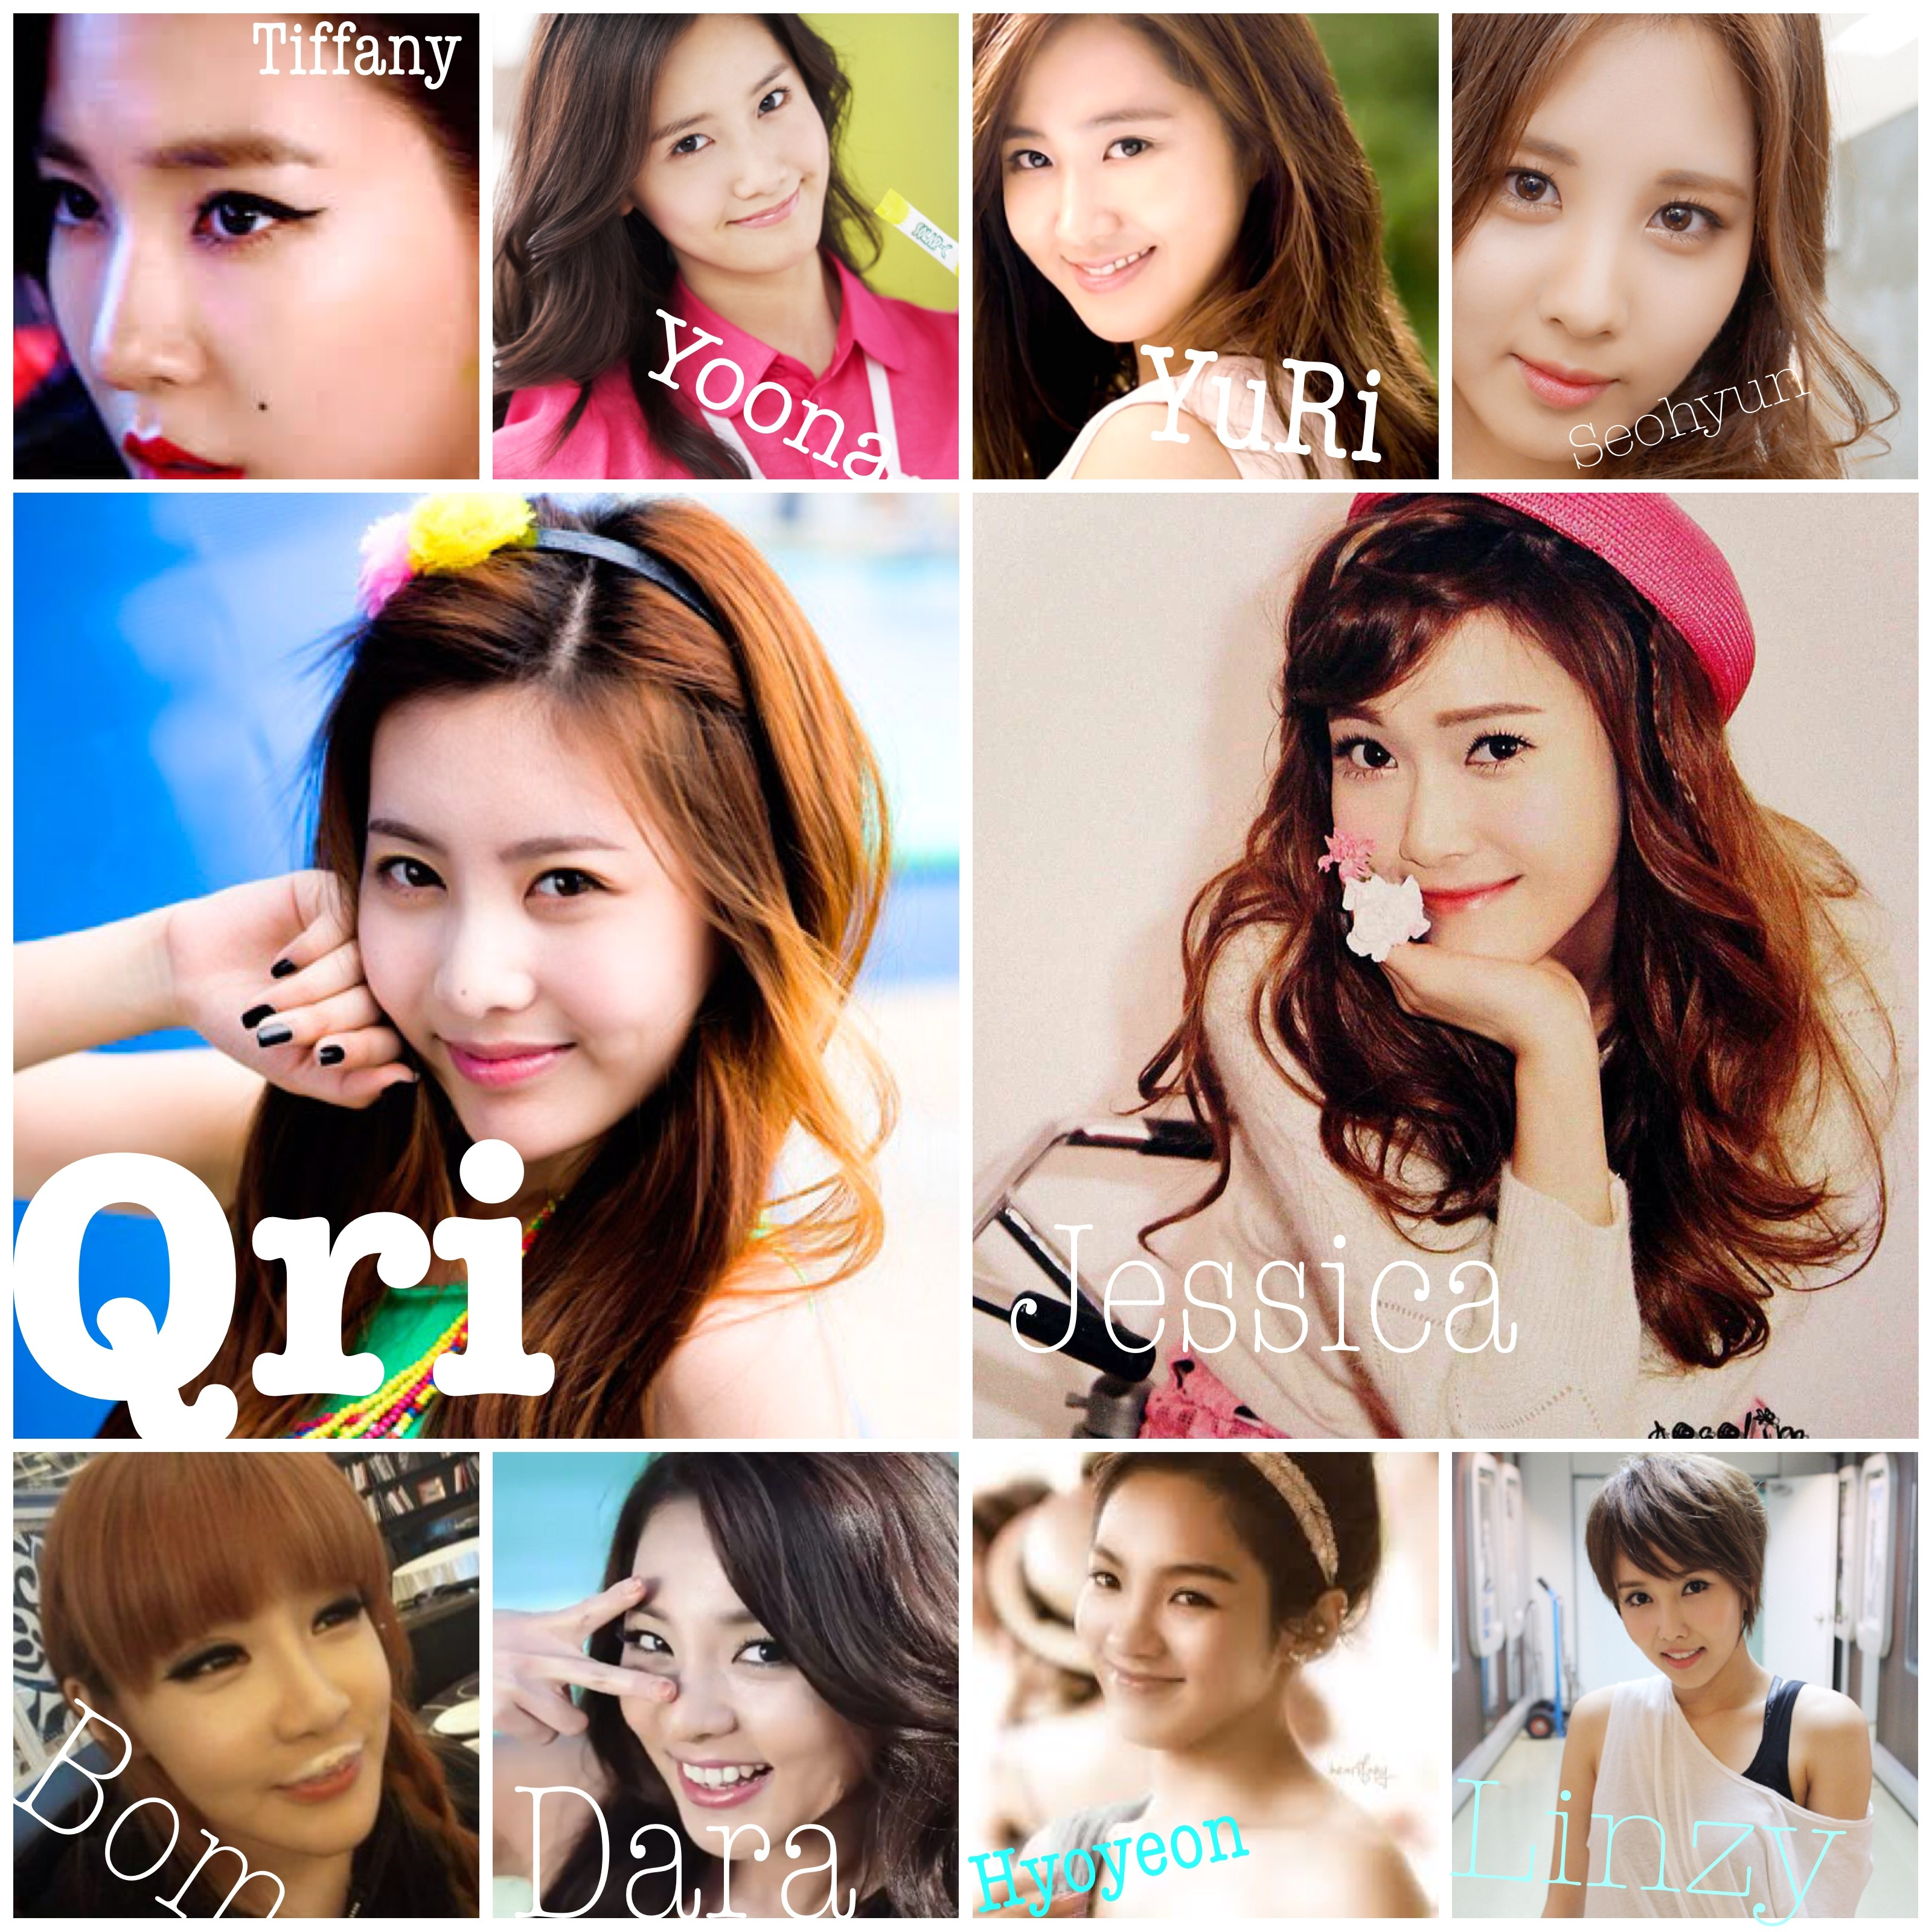 GAME] Make your own group - Kpop girl power - Fanpop | Page 3